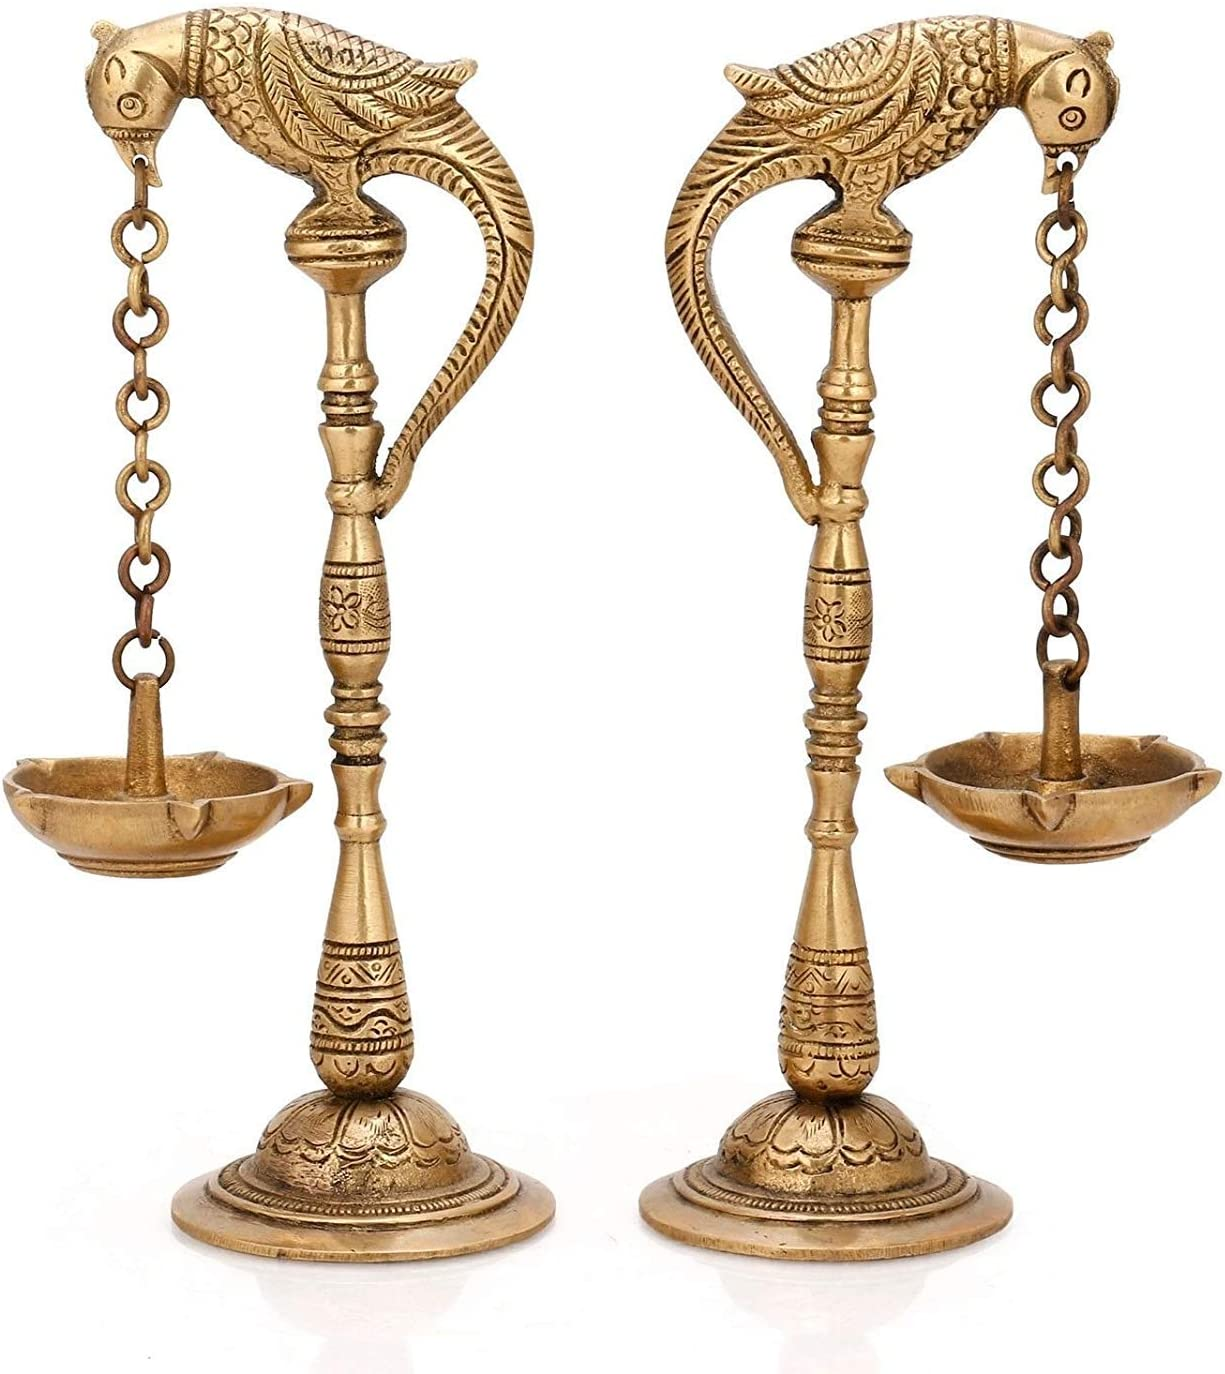 PARIJAT HANDICRAFT Bird Diya Oil lamp Stands Brass Hindu Religious puja Article Also use for fengshui Gifts and Home Temple Oil Diya Hanging in Chain from Beak (2)